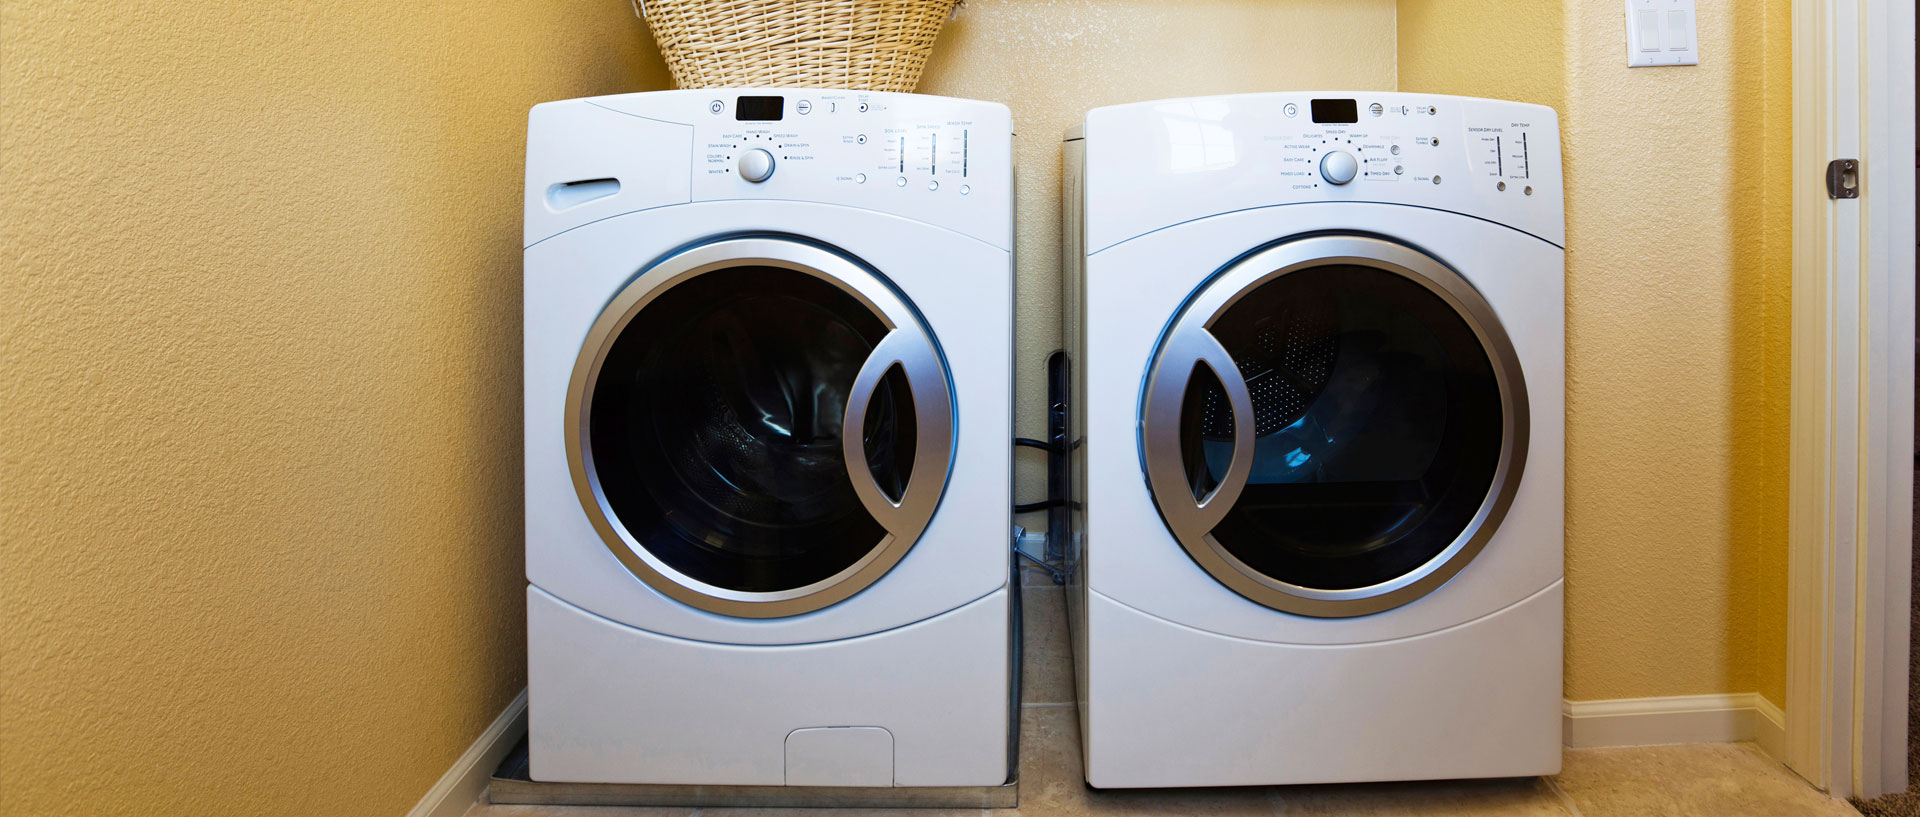 Washer And Dryer Sets That Match Your Budget Consumer